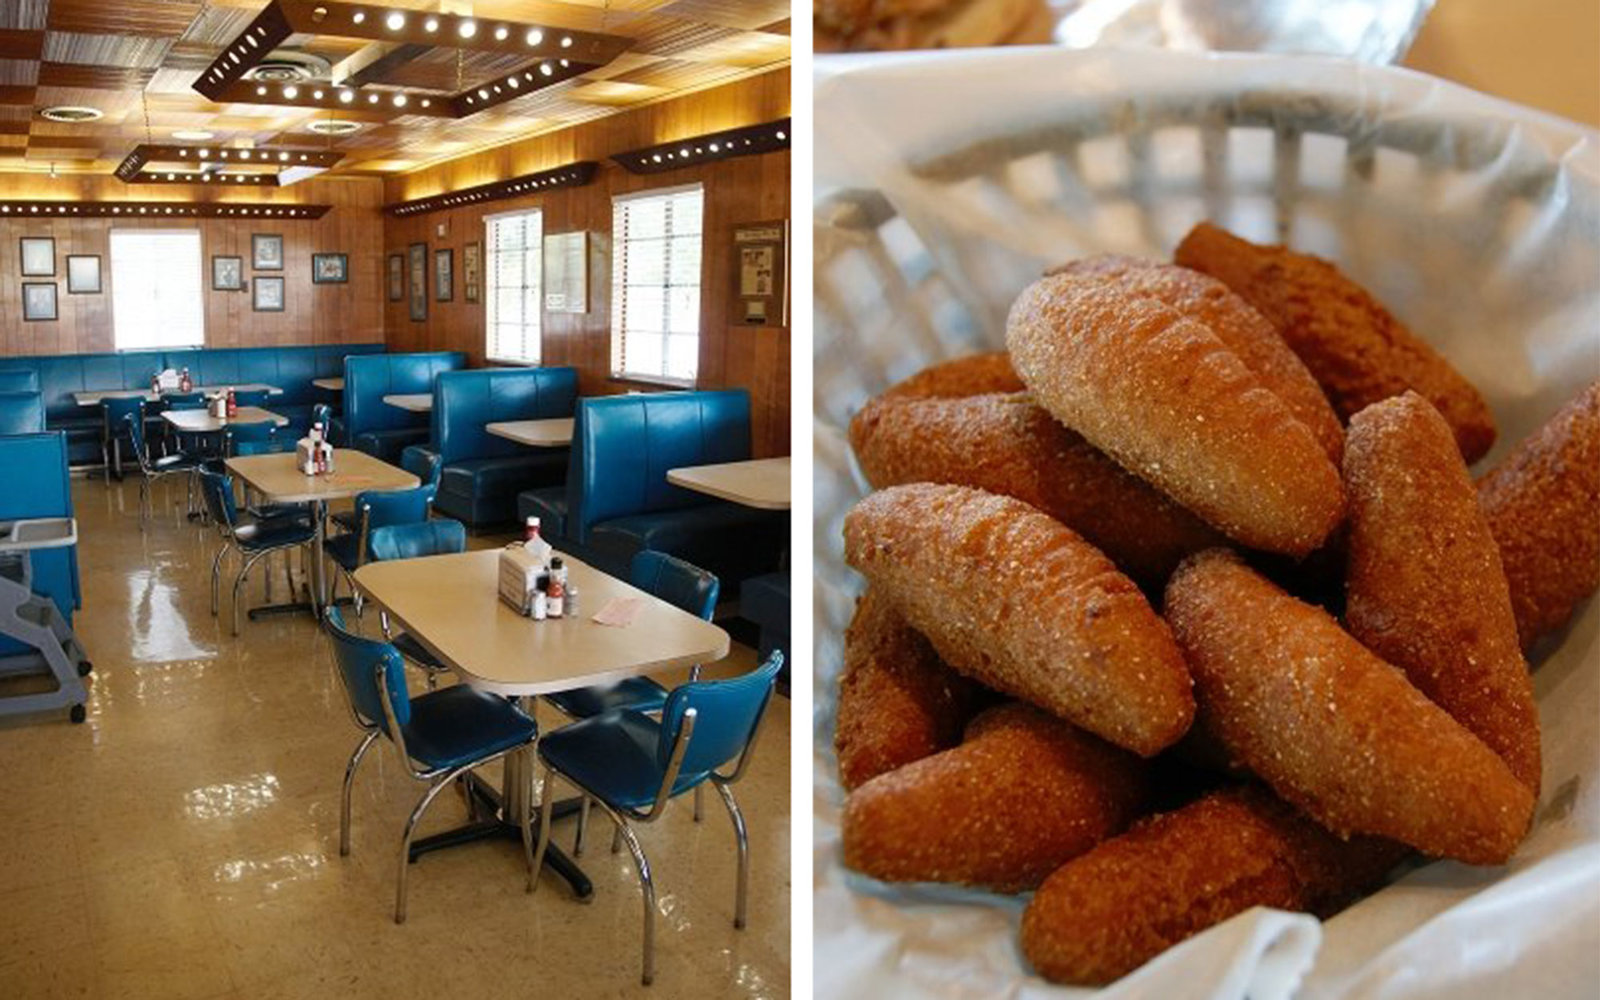 10 Things You Have to Eat and Drink in the South Right Now